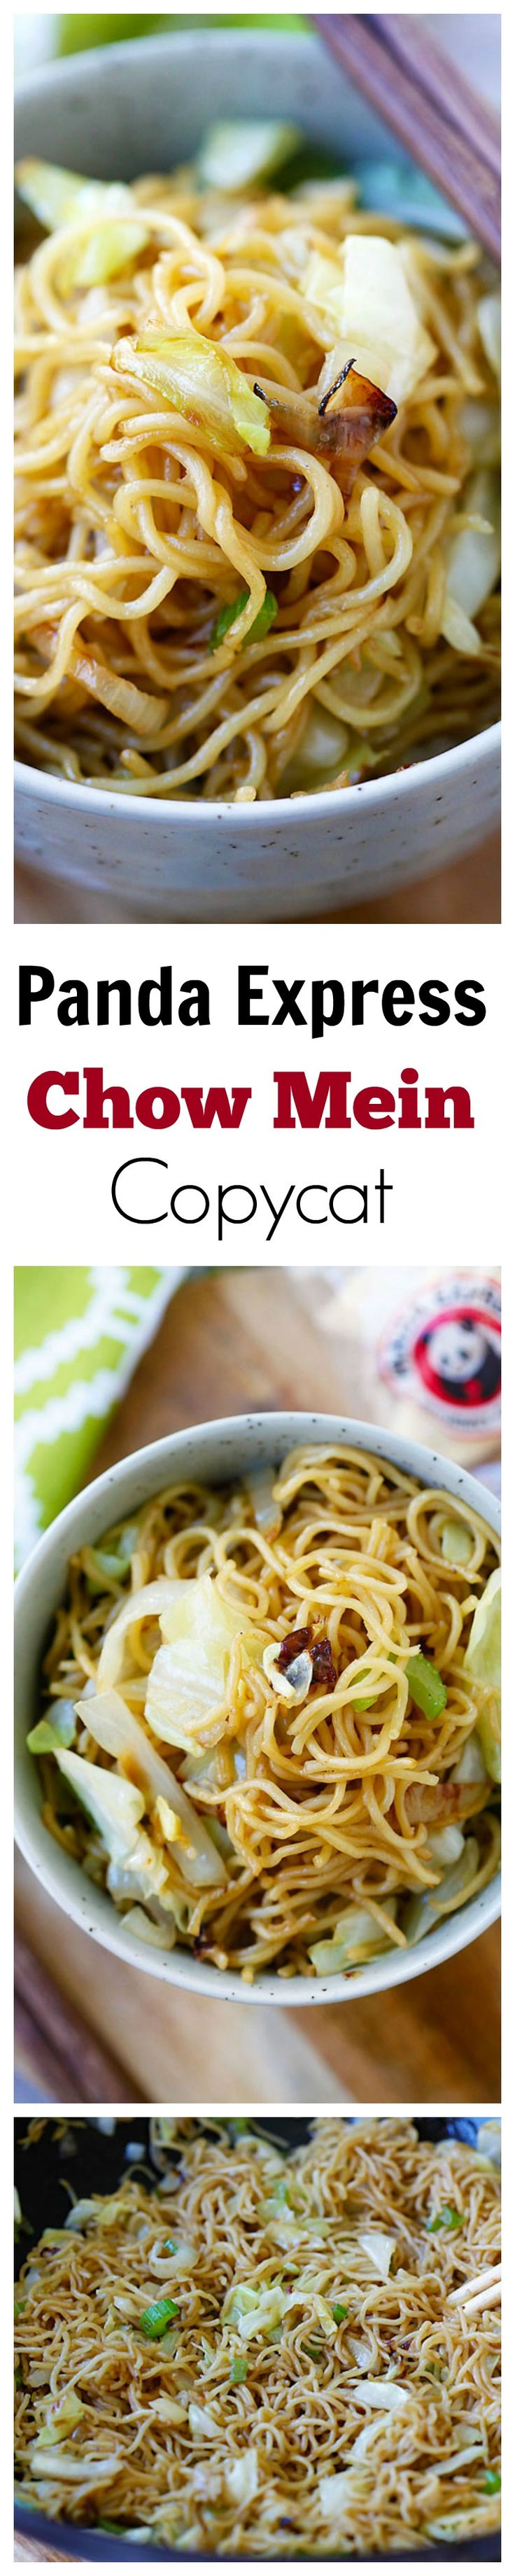 BEST Panda Express Chow Mein copycat recipe EVER that tastes EXACTLY like Panda Express!! So good, so easy, healthier & takes 15 mins!! | rasamalaysia.com